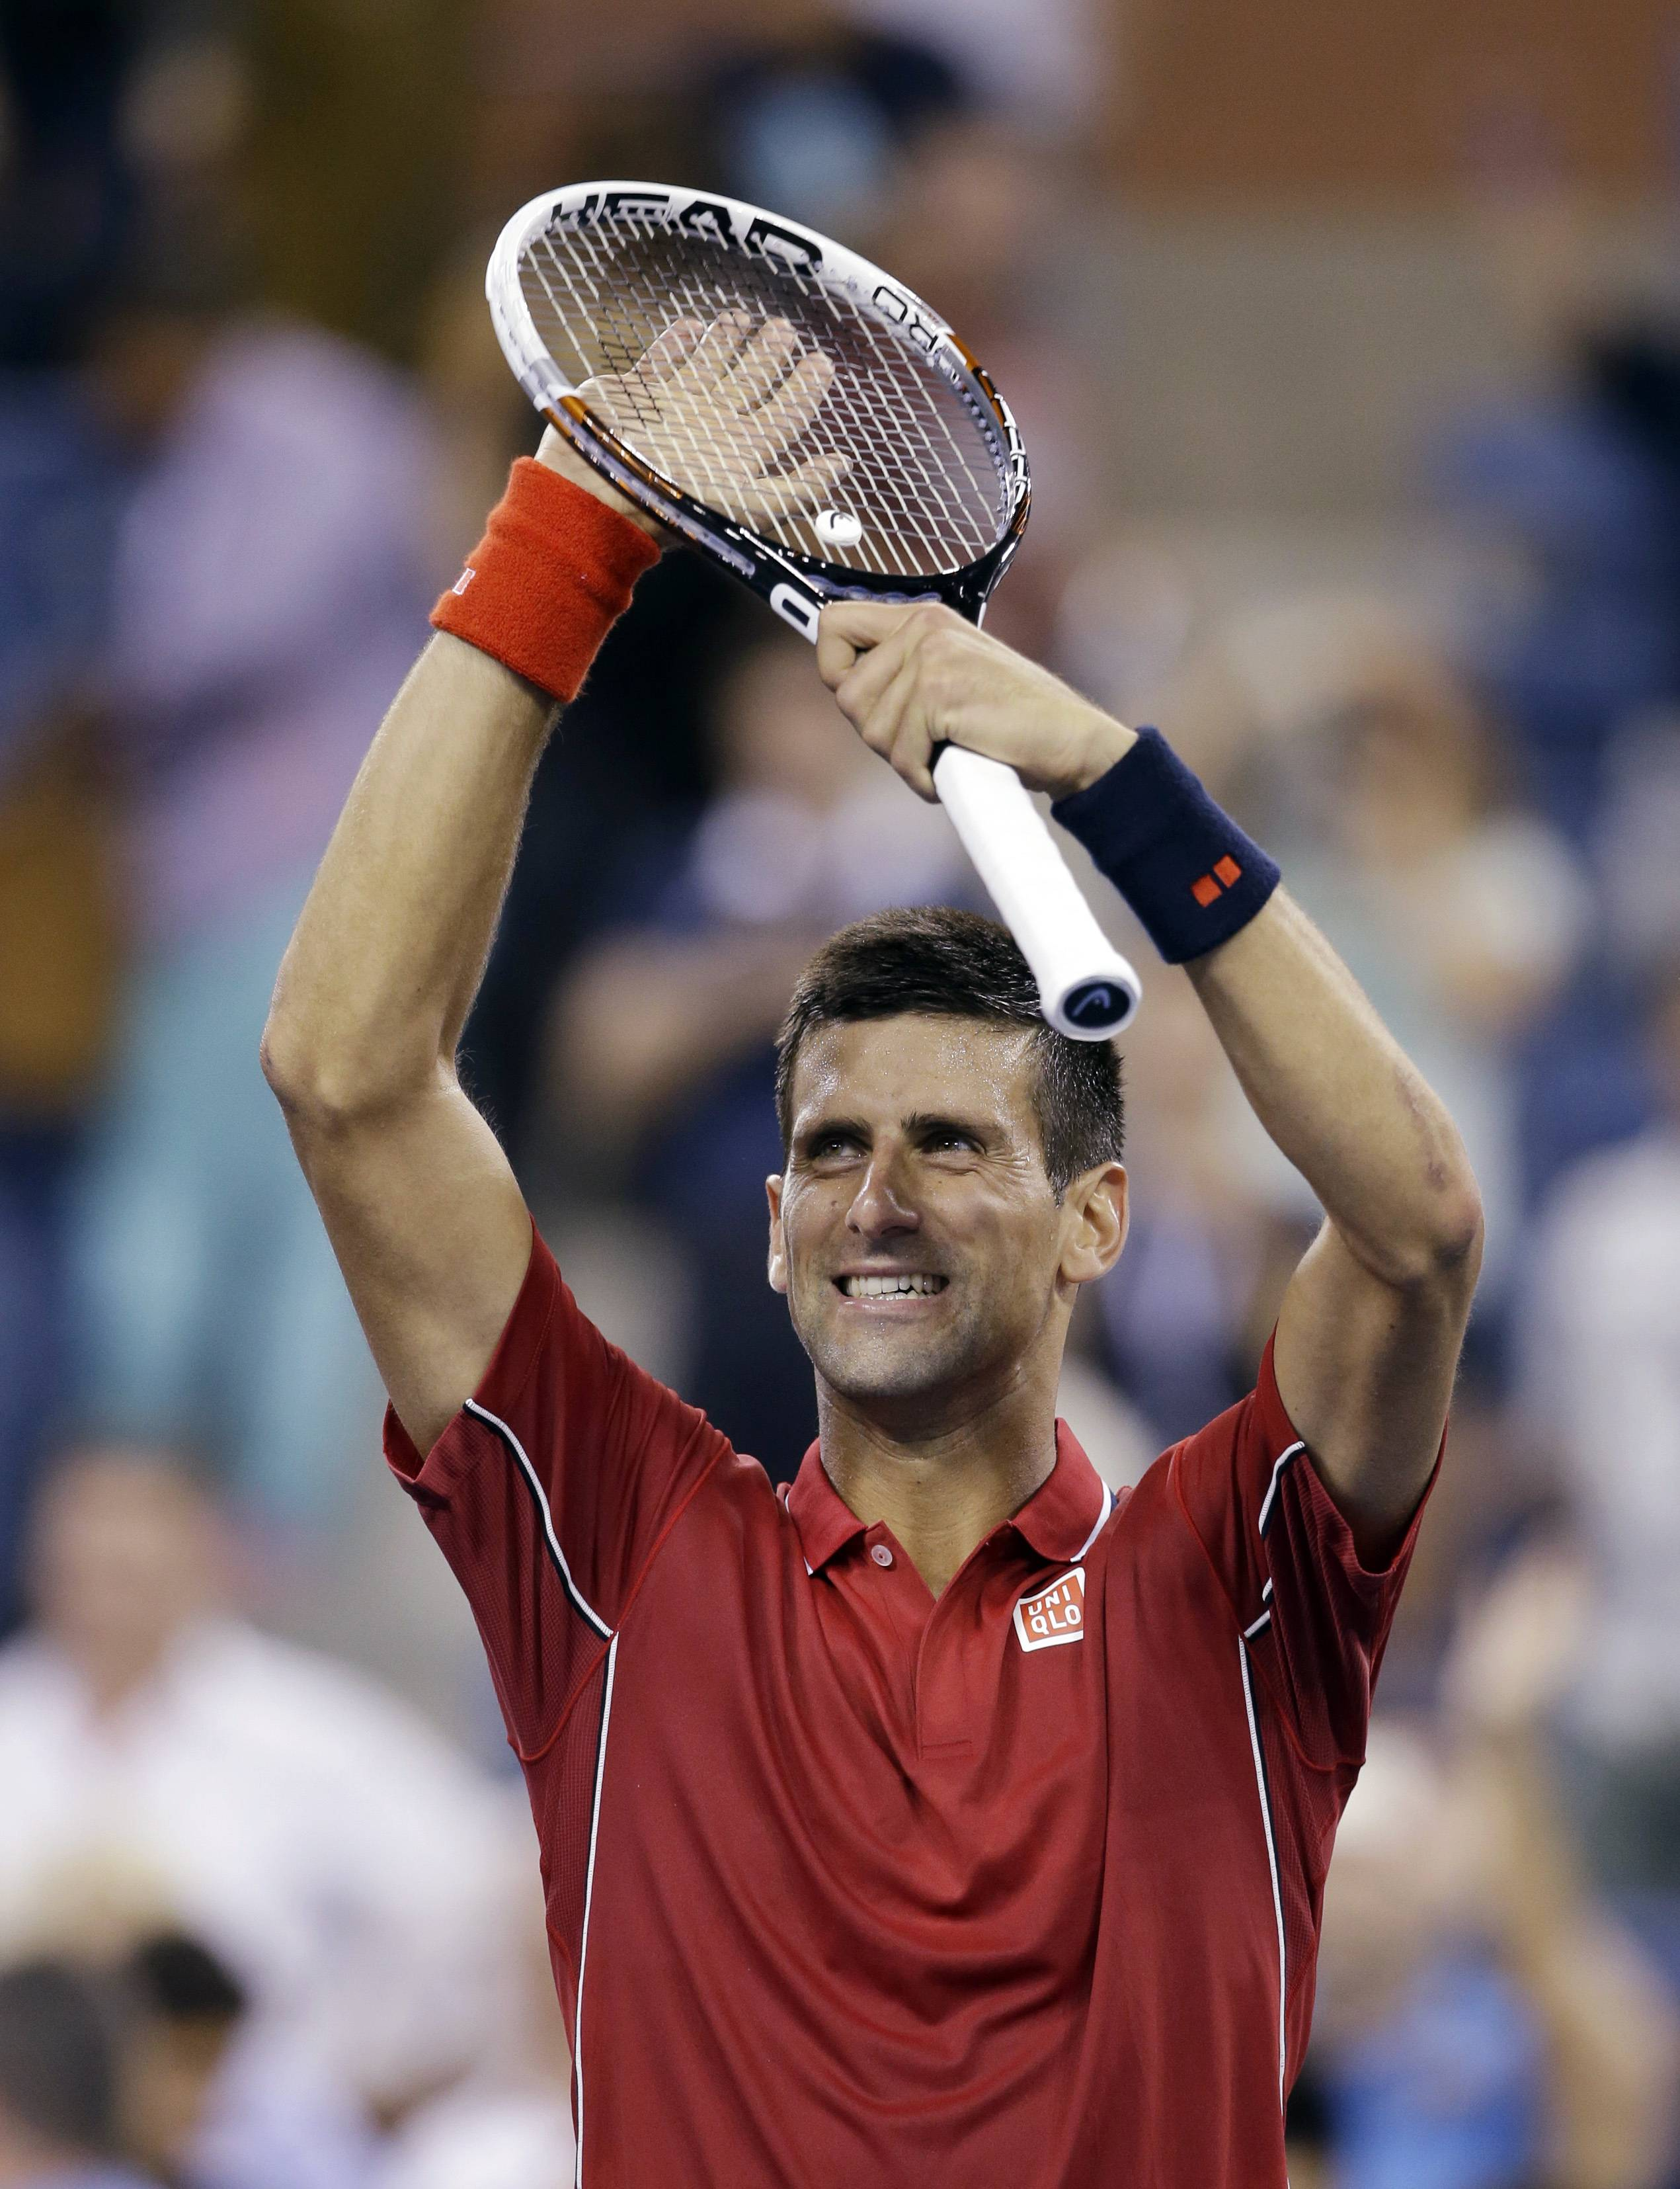 Novak Djokovic defeated Diego Schwartzman 6-1, 6-2, 6-4 on Monday in the opening round of the U.S. Open.